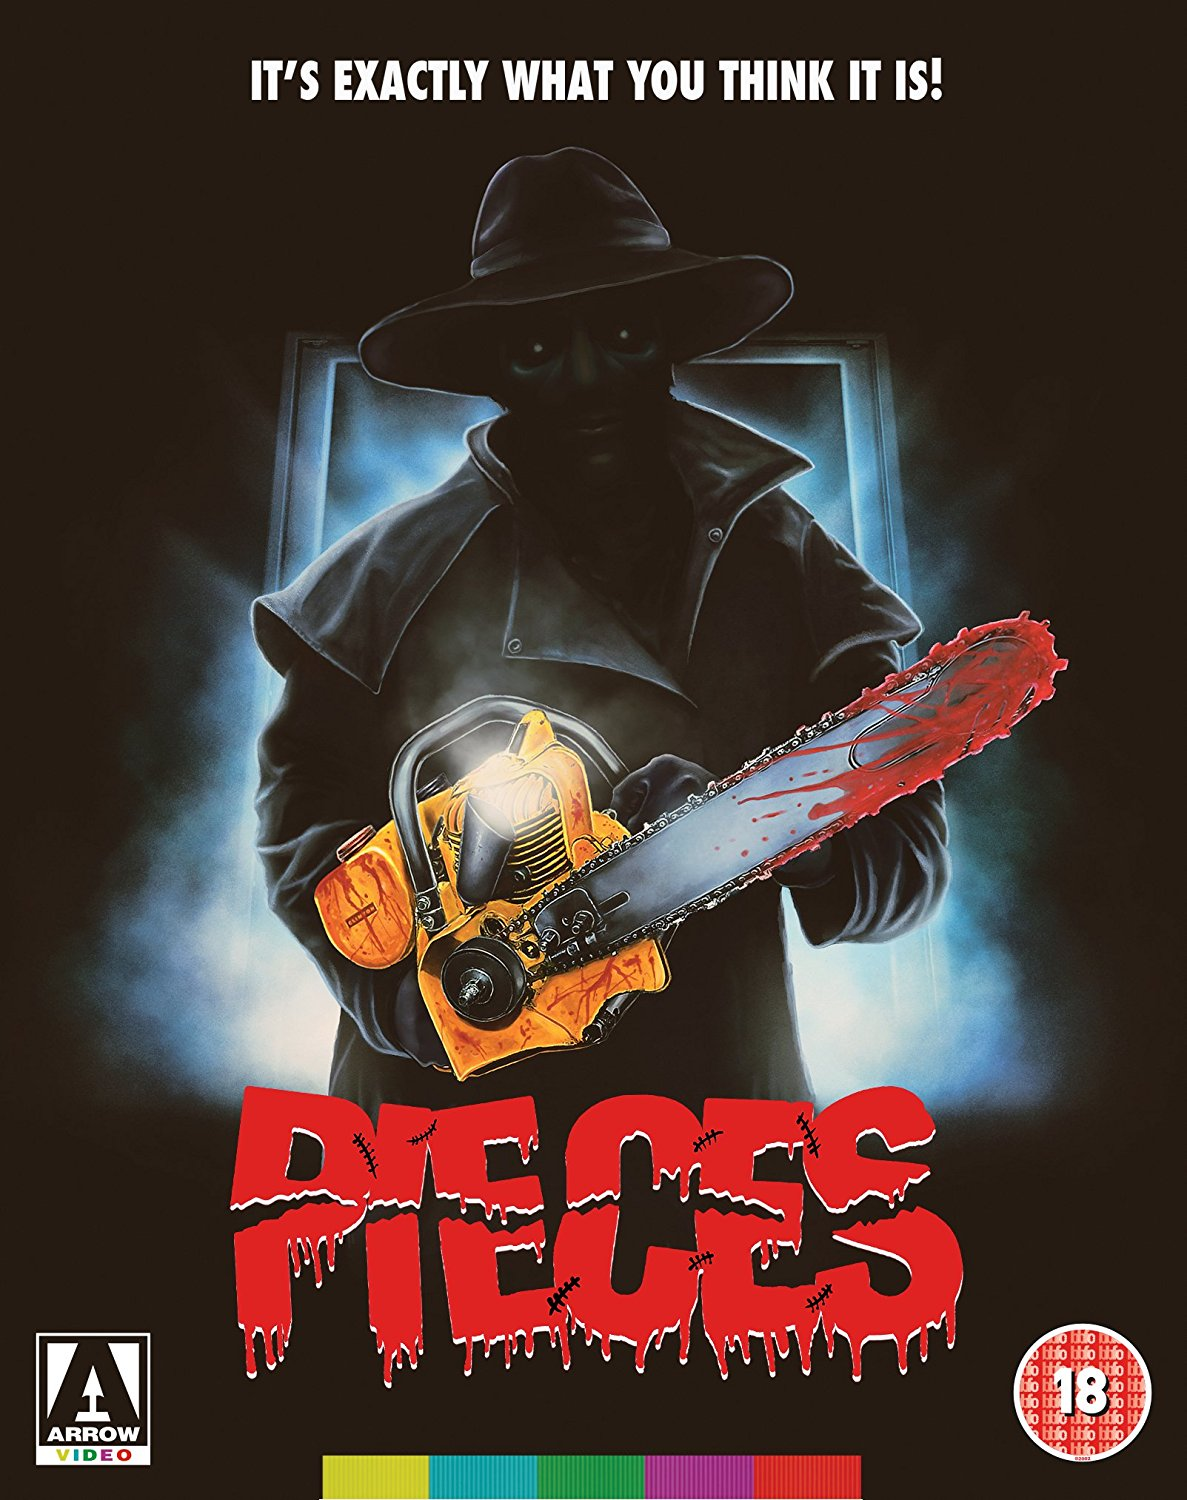 'Pieces' Review (Arrow Video Limited Edition Blu-Ray)